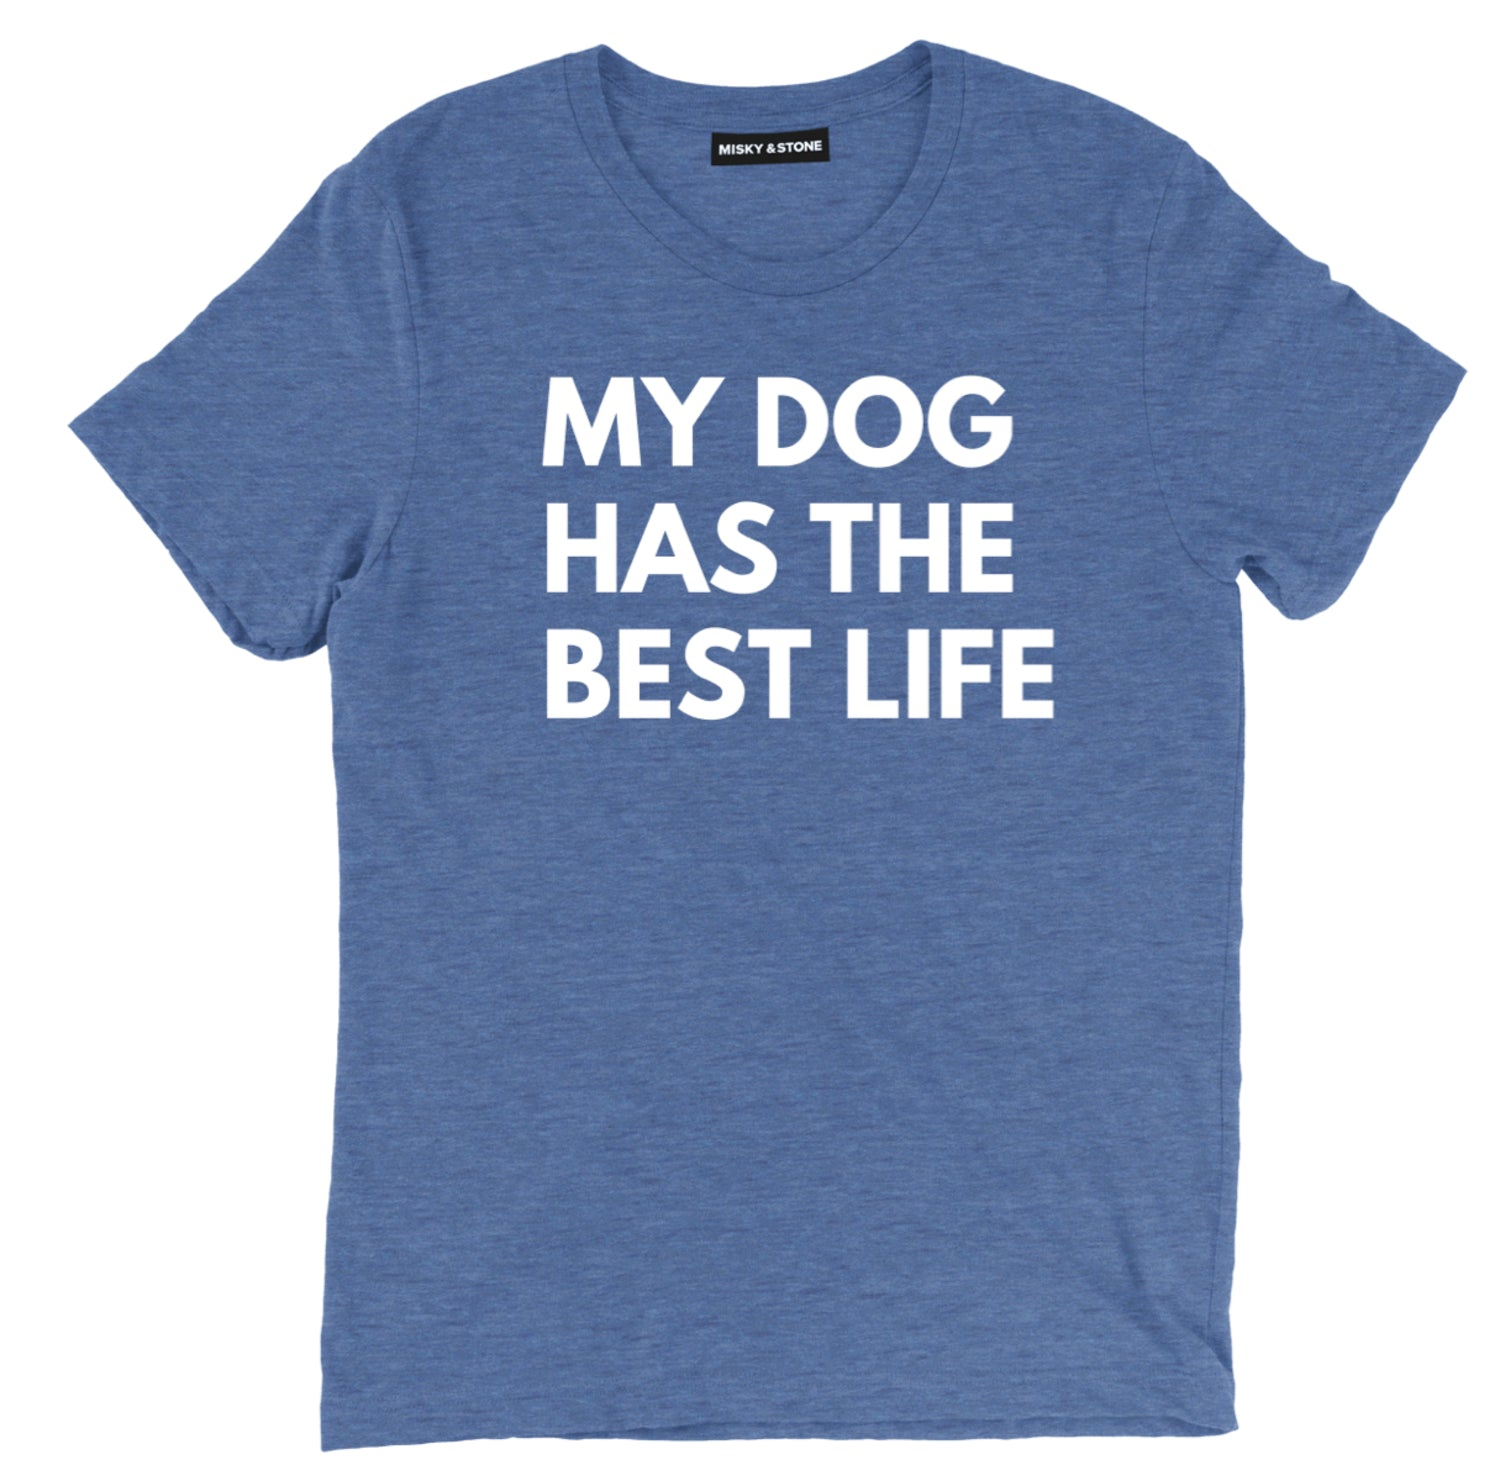 my dog has the best life t shirt, best life tee, dog tee, dog lovers tee, dog t shirts, dog shirts, dog lover t shirts, dog lover shirts, funny dog t shirt, dog tees